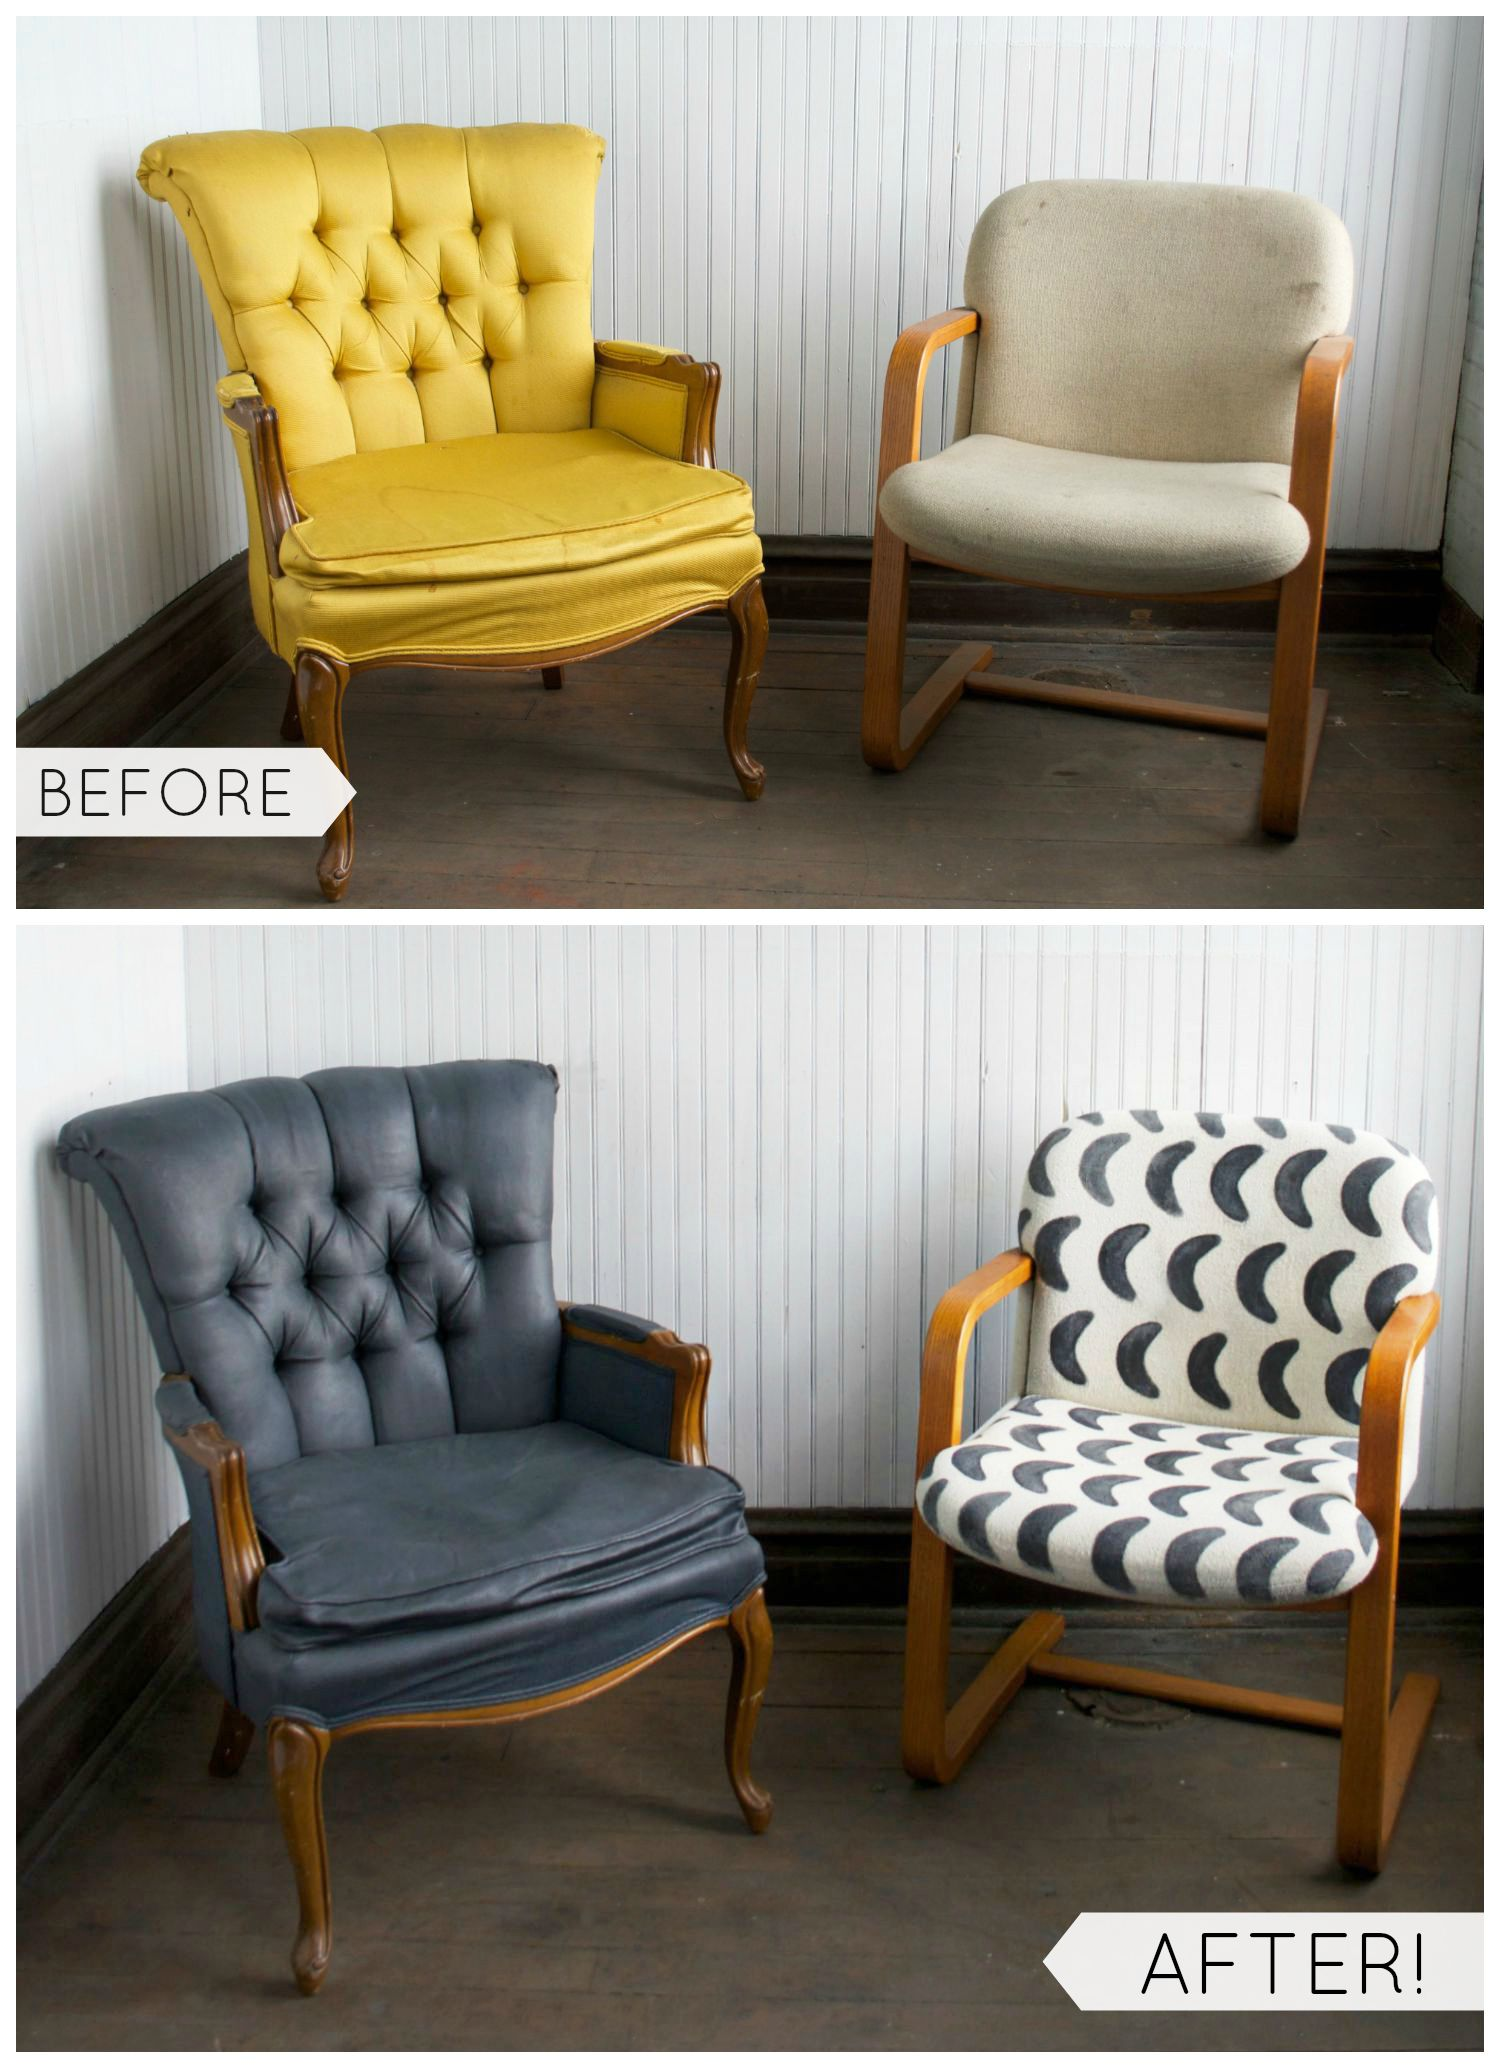 15 tips and tricks to make upholstery look like new again